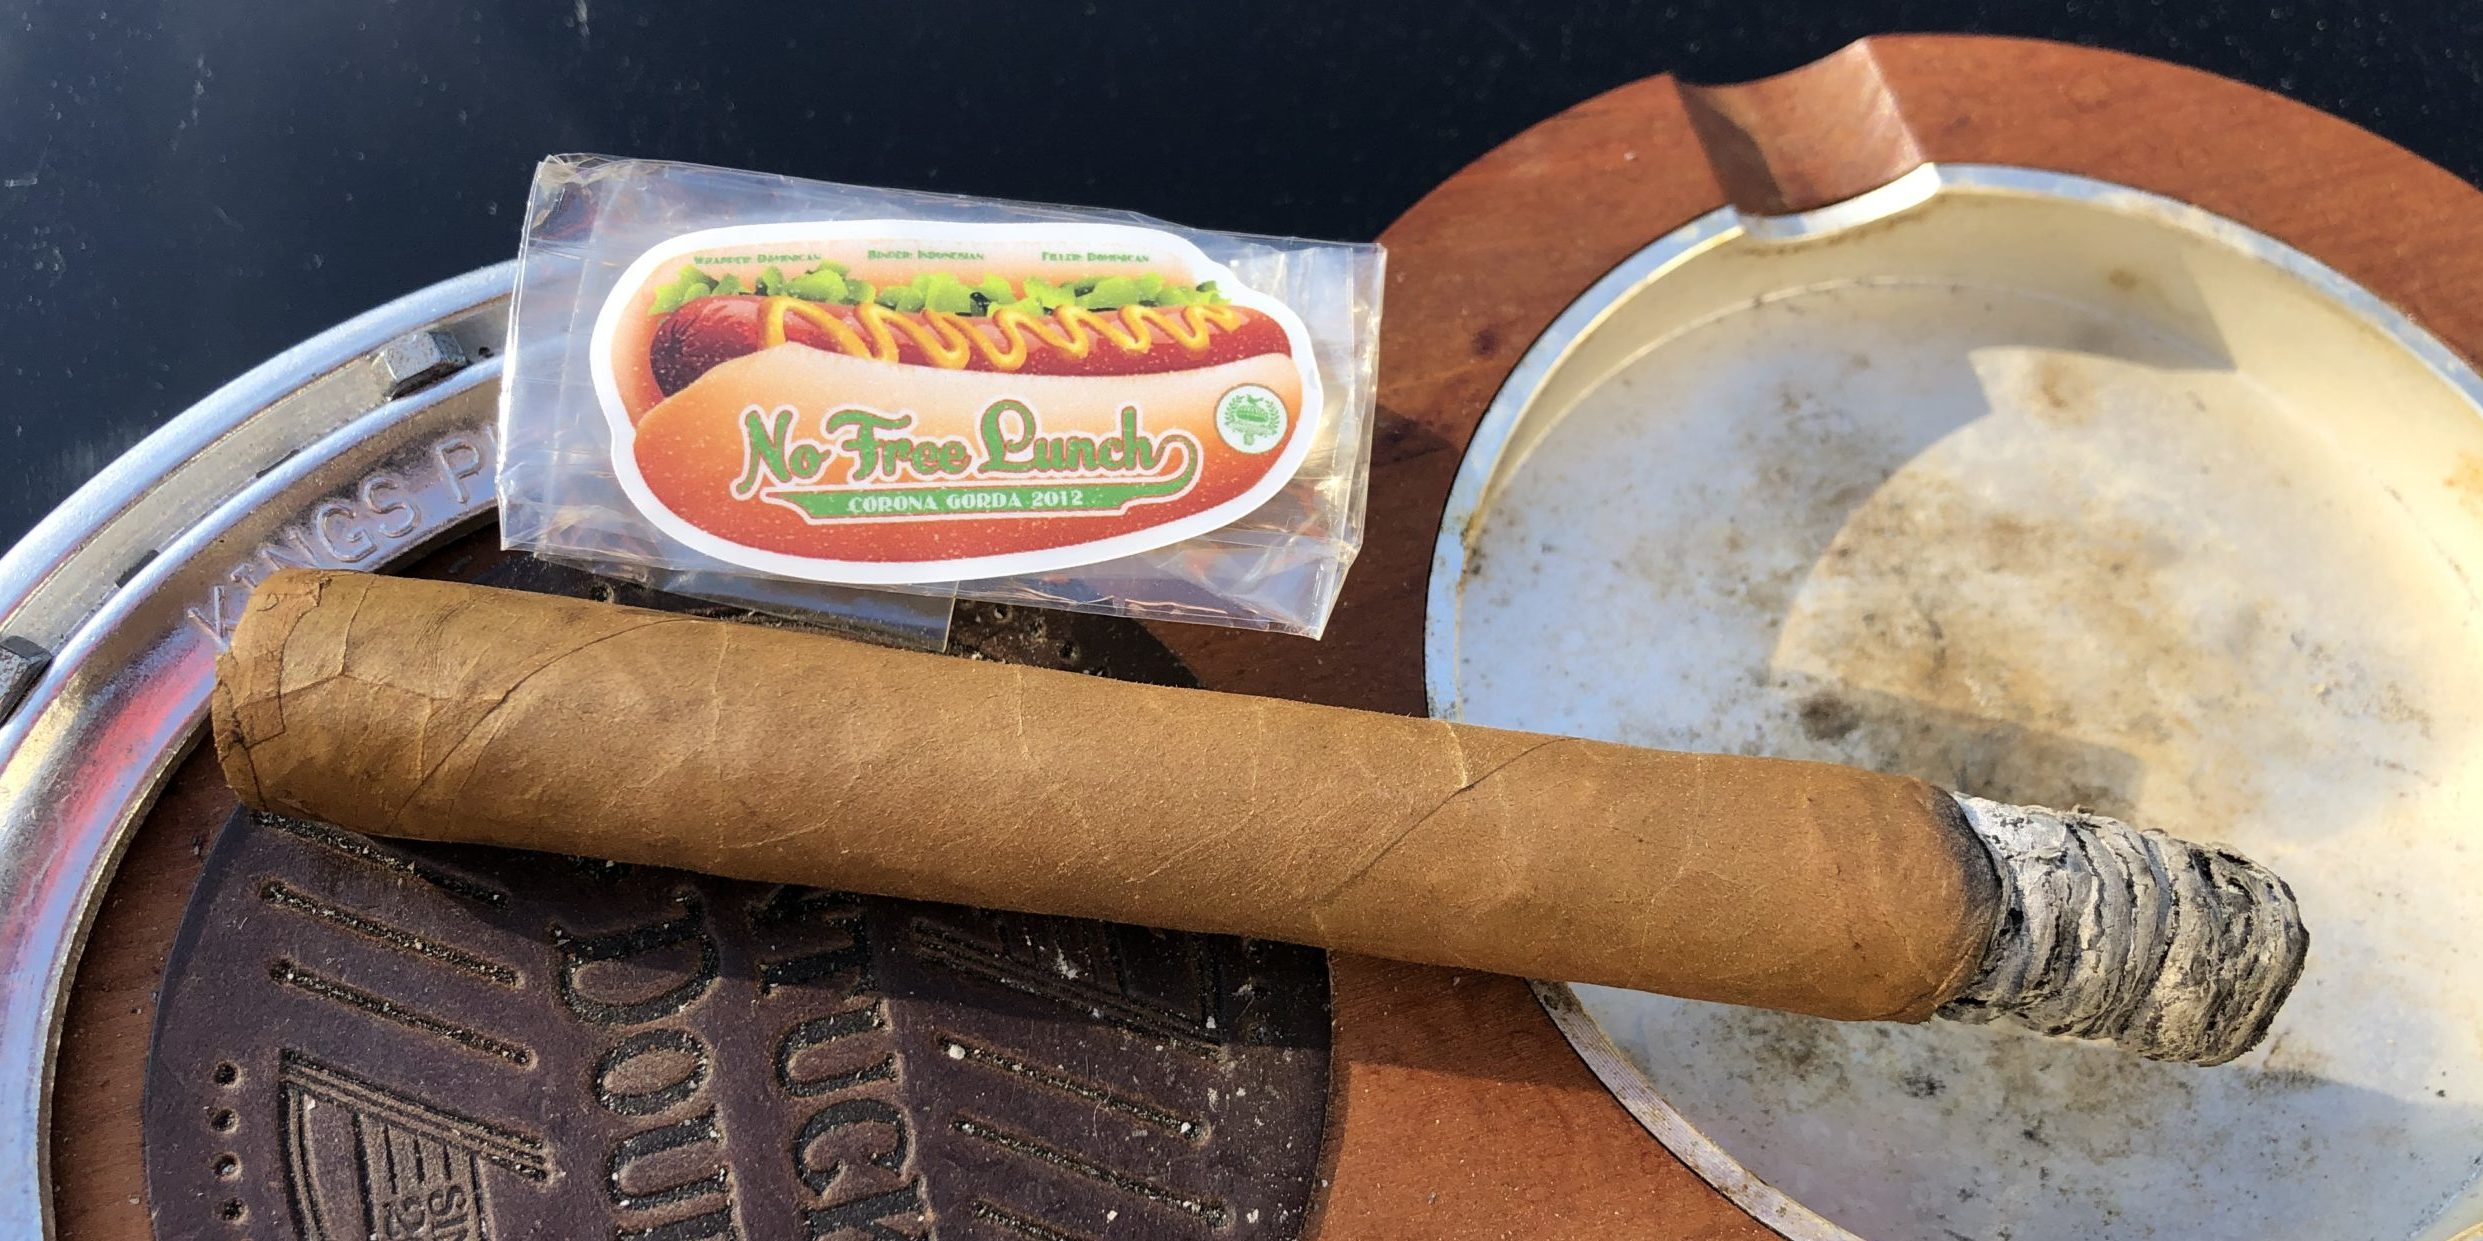 You are currently viewing Lost & Found No Free Lunch LE 2012 Corona Gorda Cigar Review